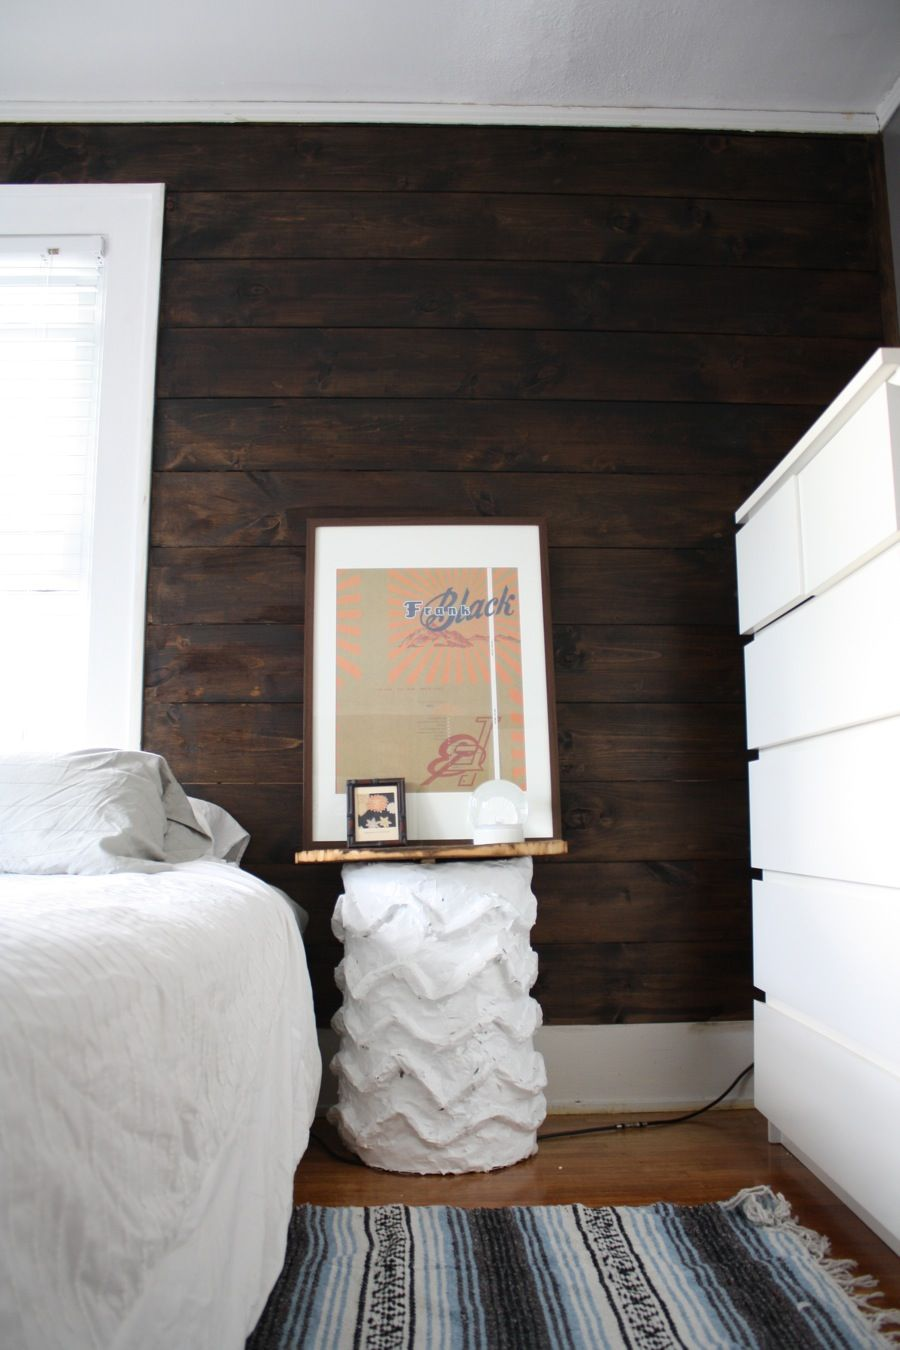 The Best Stain For A Natural Wood Shiplap Wall Ship Lap Walls Wood Shiplap Wall Remodel Bedroom